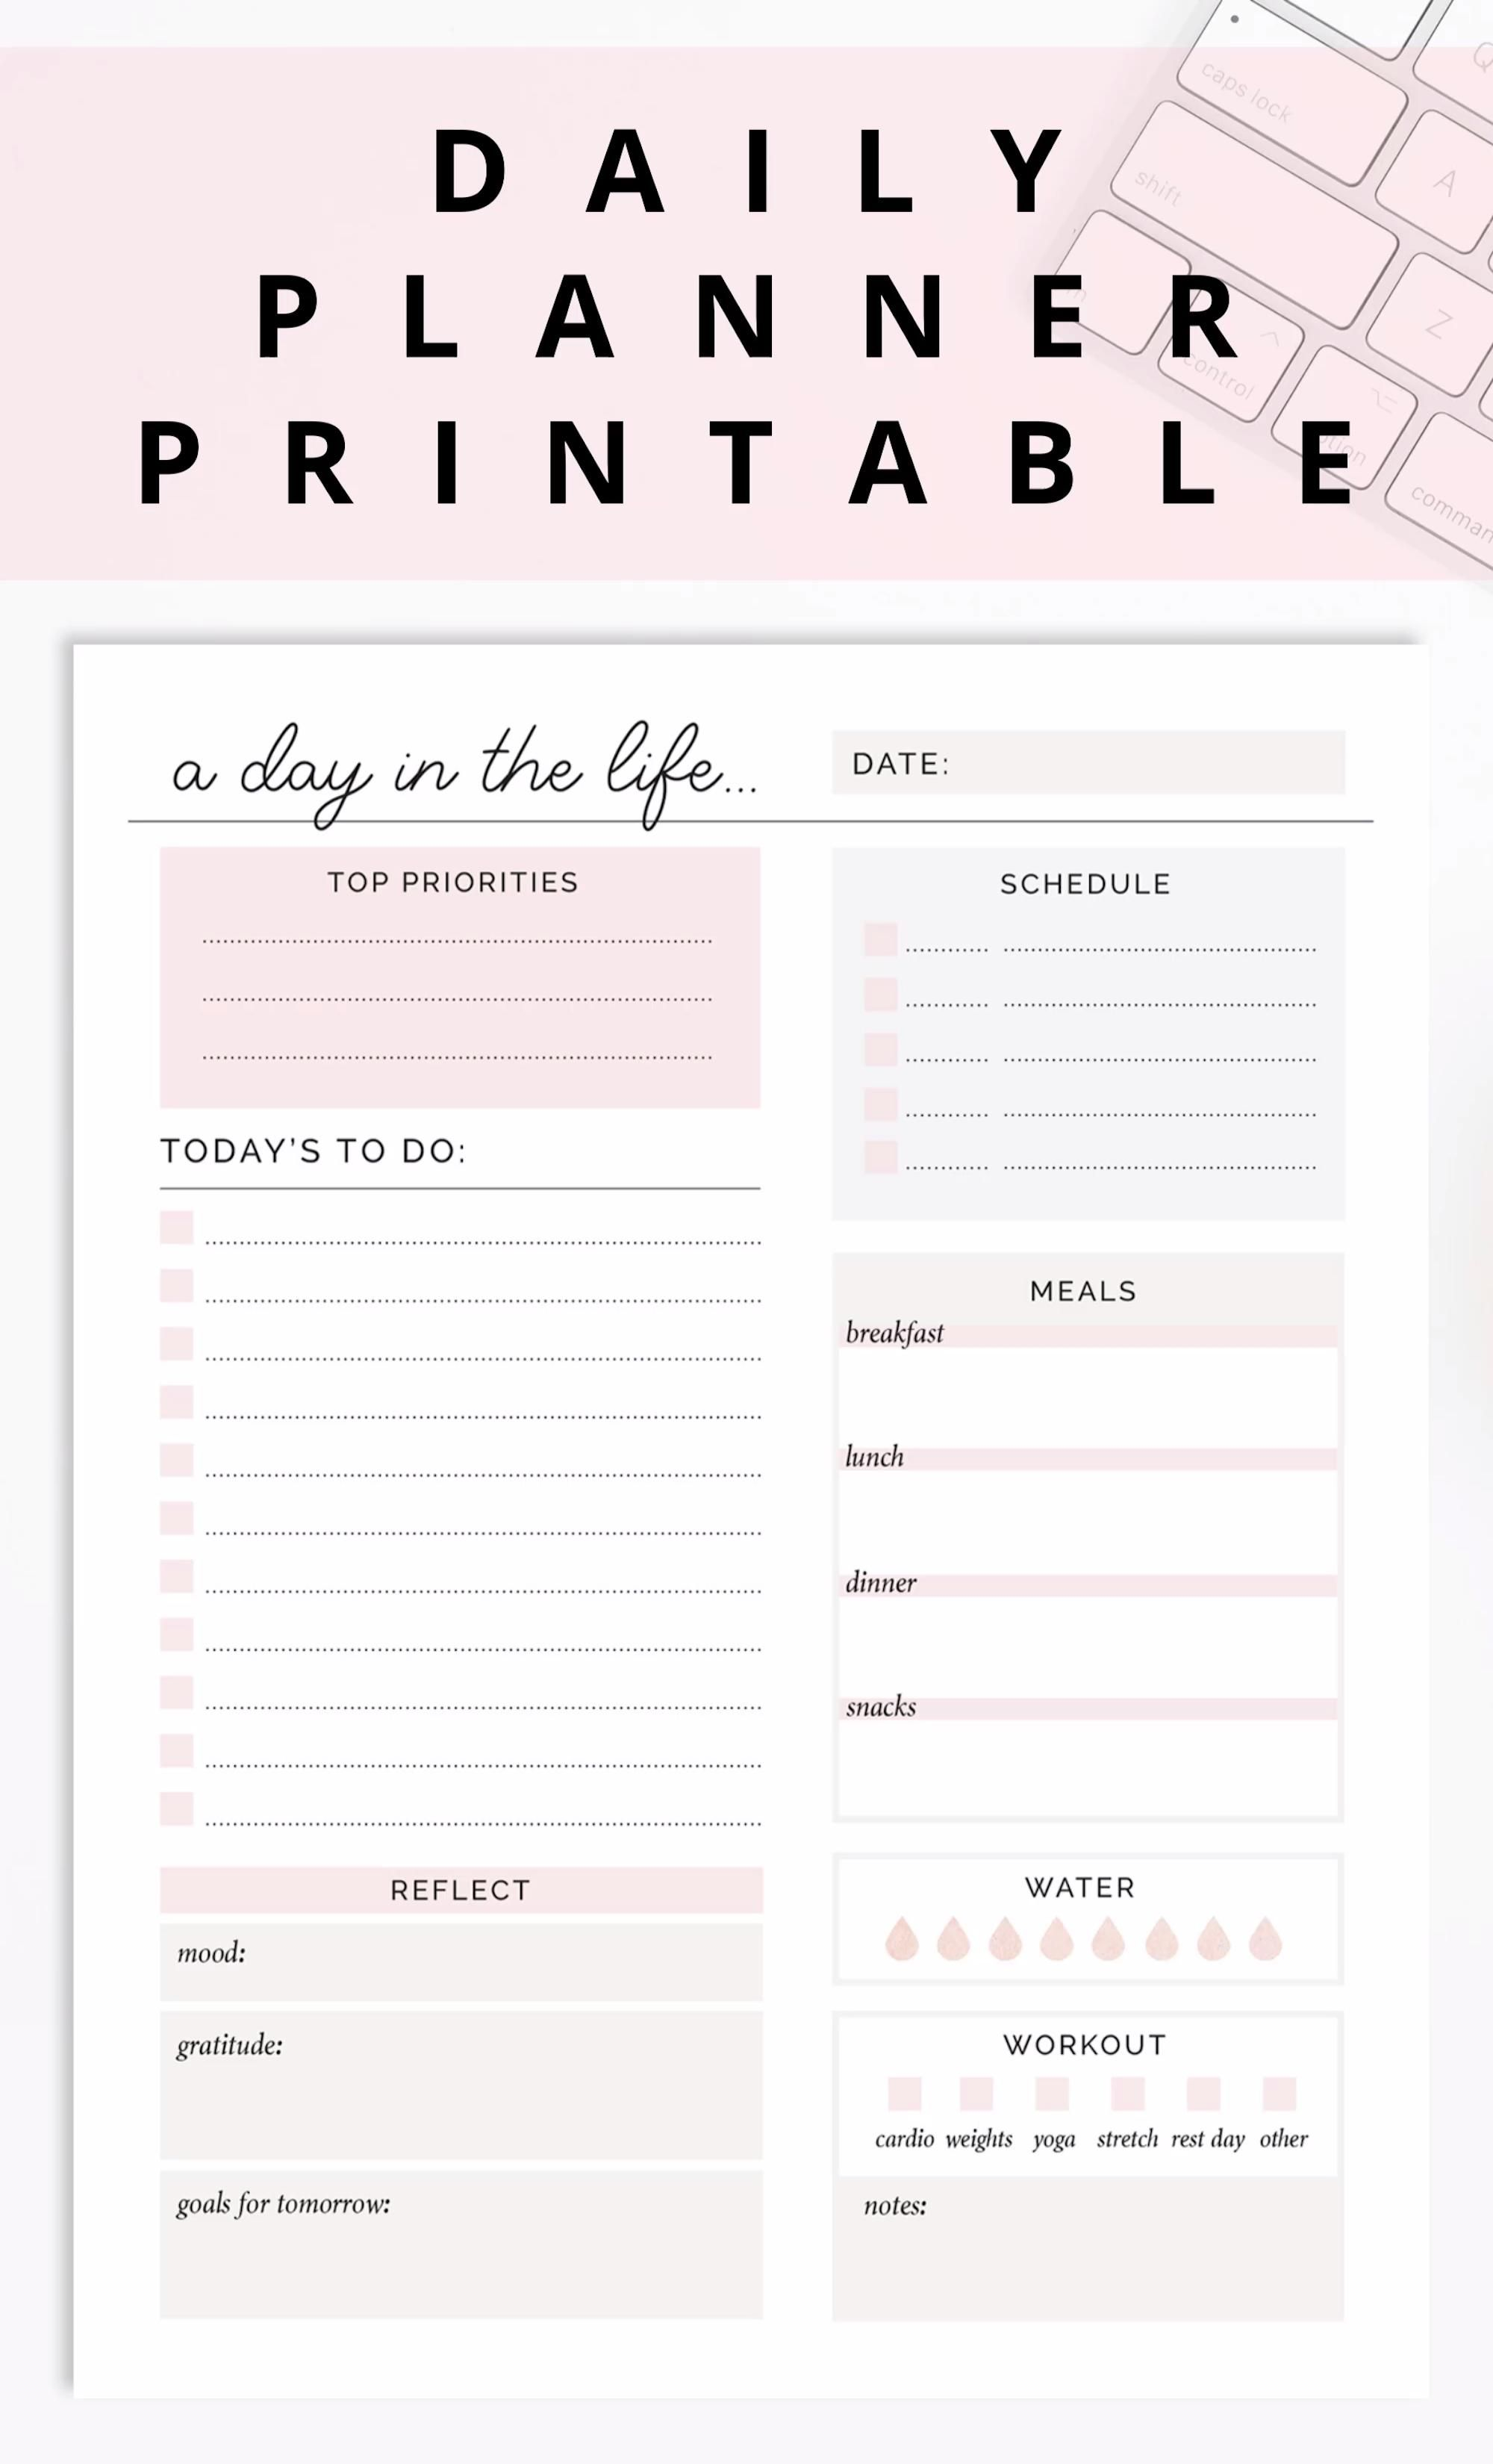 Daily Planner Printable/ Editable Daily To Do list Planner Page, Meal Planner, Fitness Goals Tracker -   fitness Planner pages